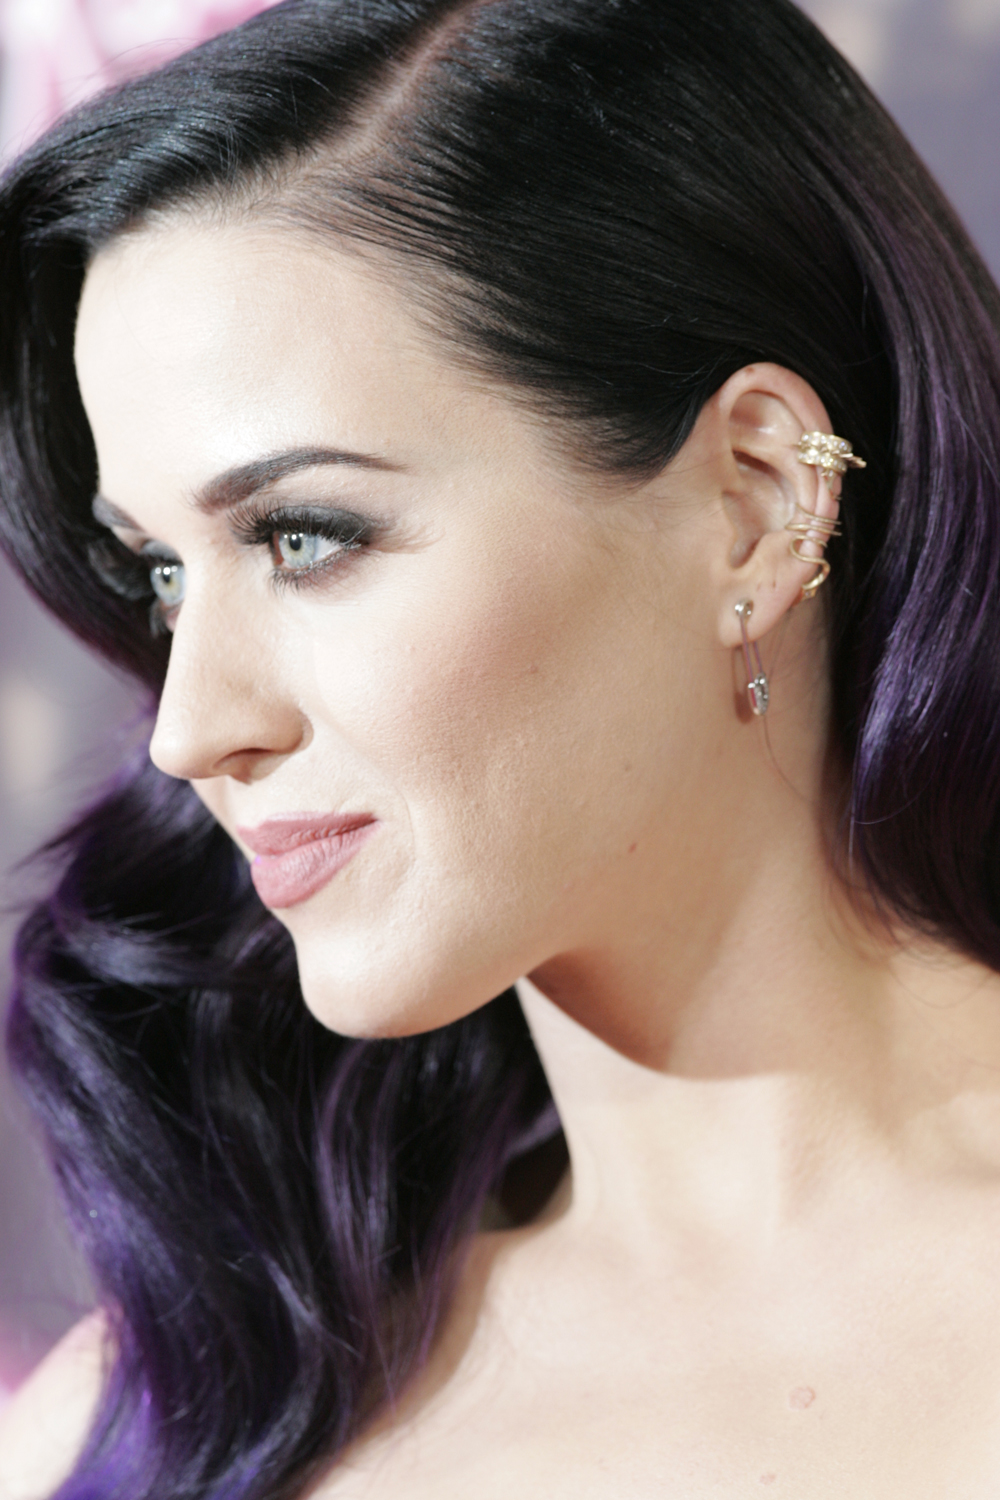 Katy Perry: Part of Me - Wikipedia